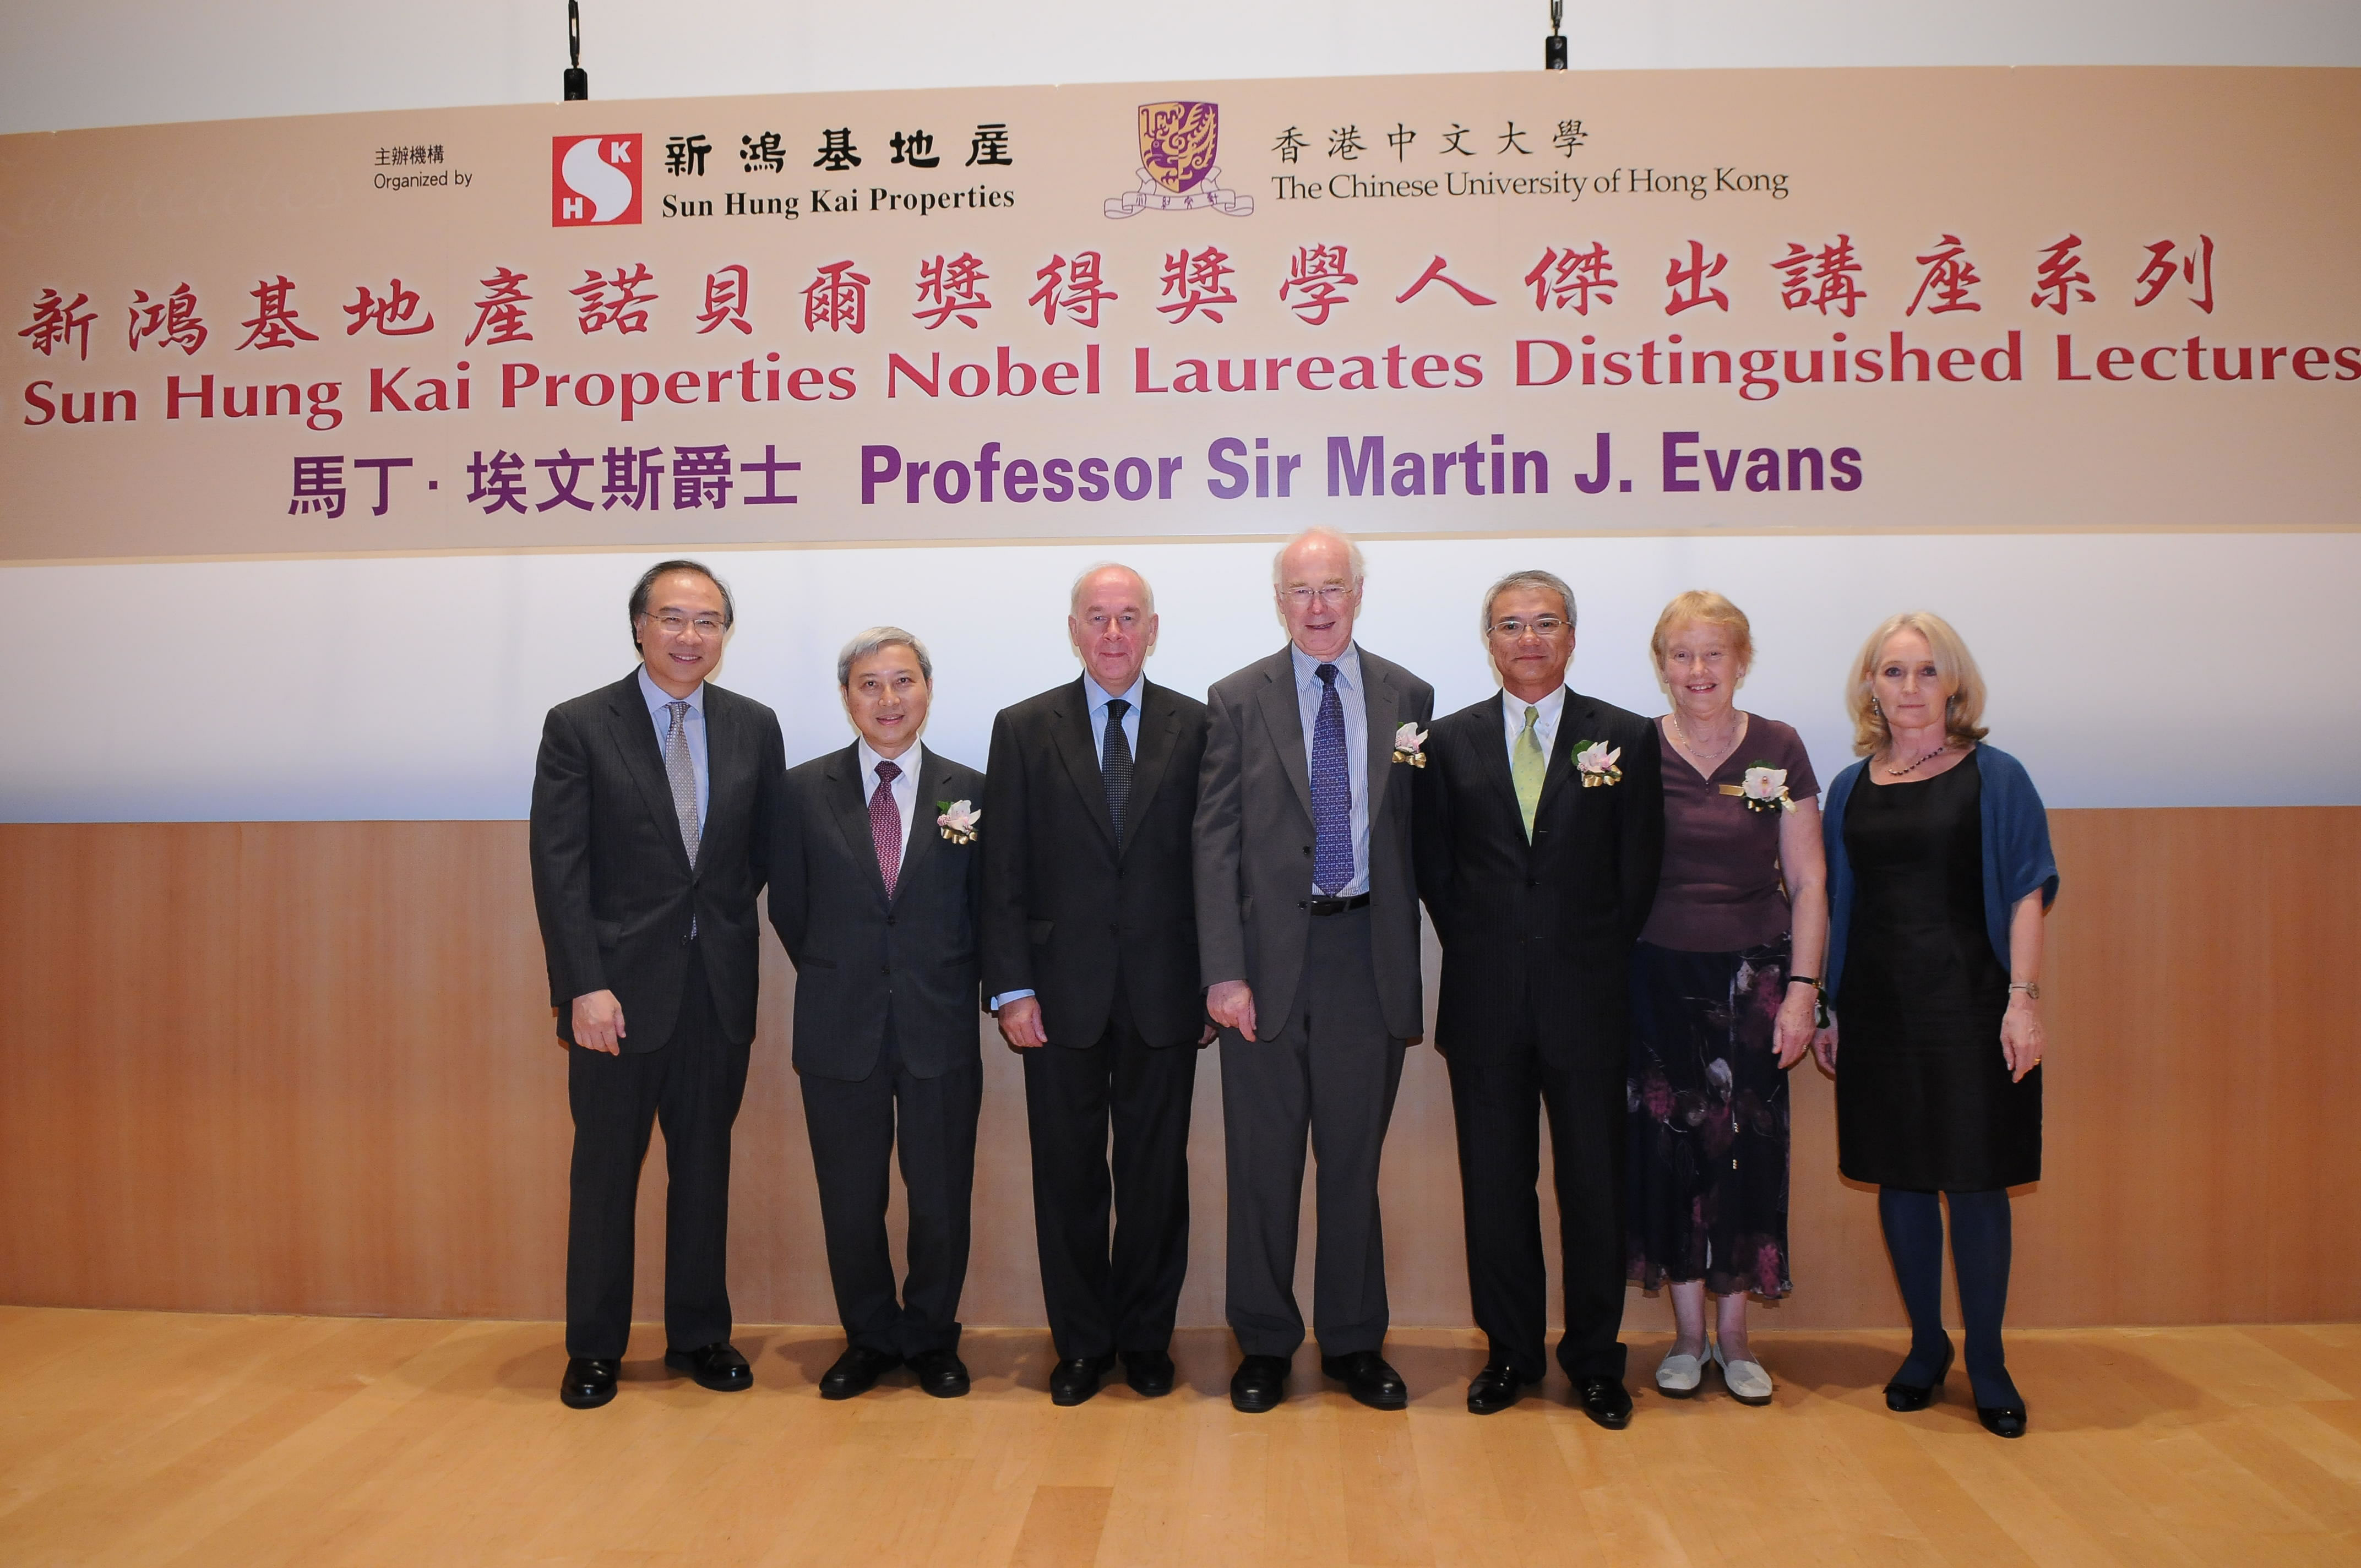 (From left) CUHK Pro-Vice-Chancellor Professor Jack Cheng; CUHK Acting Vice-Chancellor Professor Liu Pak-wai; Cardiff University Vice-Chancellor Dr David Grant; Sir Martin; SHKP Executive Director Mike Wong; Lady Evans; and CUHK School of Public Health Director Professor Sian Griffiths